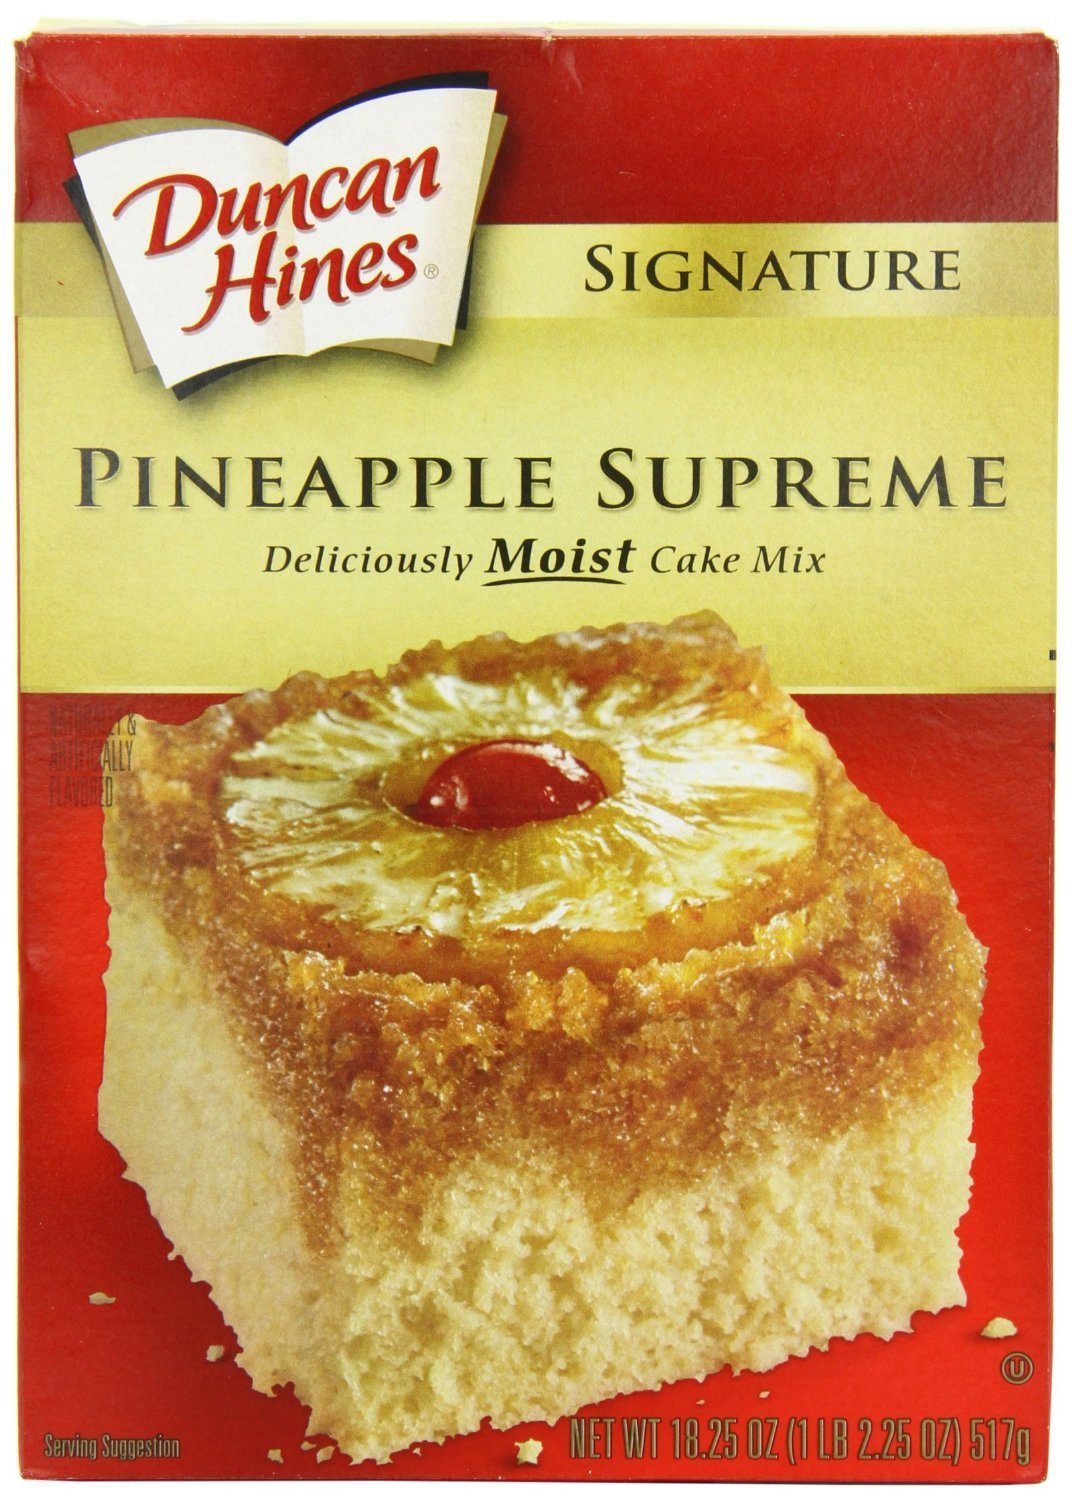 Duncan Hines Signature Pineapple Cake Mix, 16.5-ounce Boxes (Pack of 2)